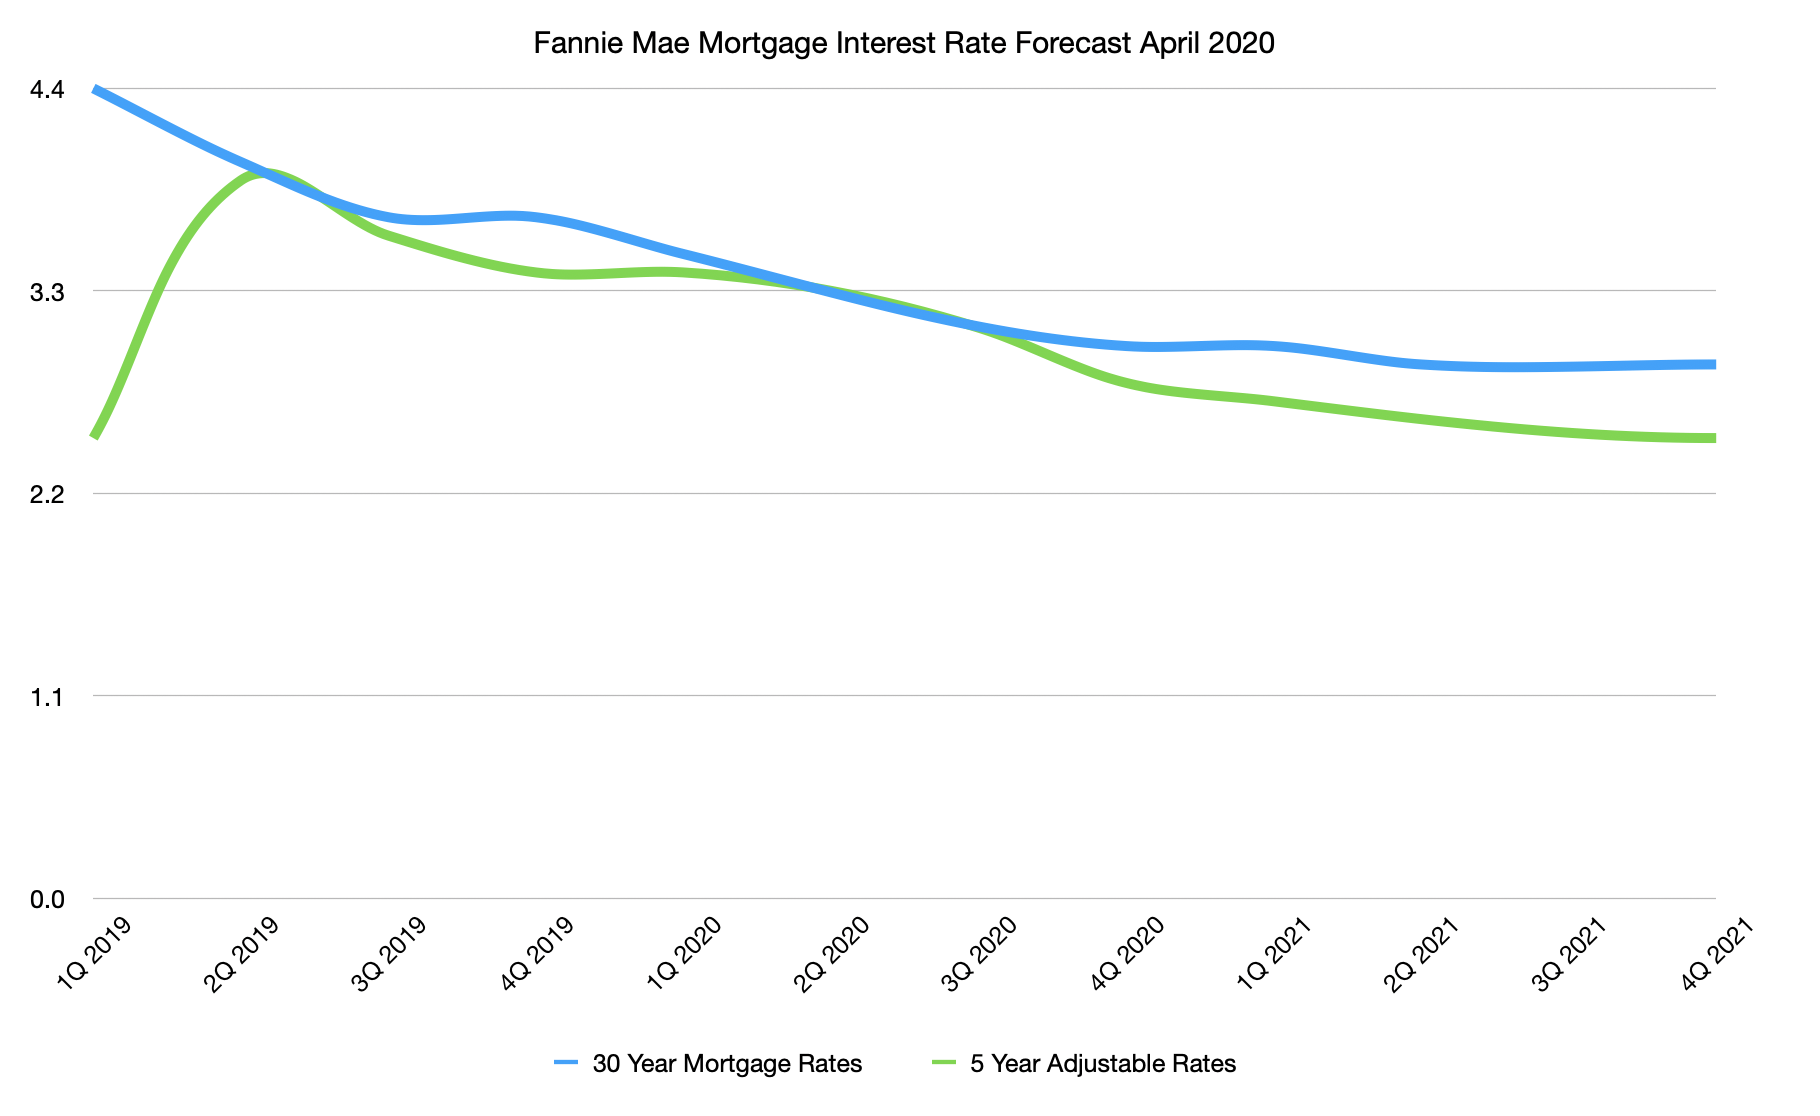 Fannie Mae Mortgage Interest Rate Forecast April 2020 (Chart)